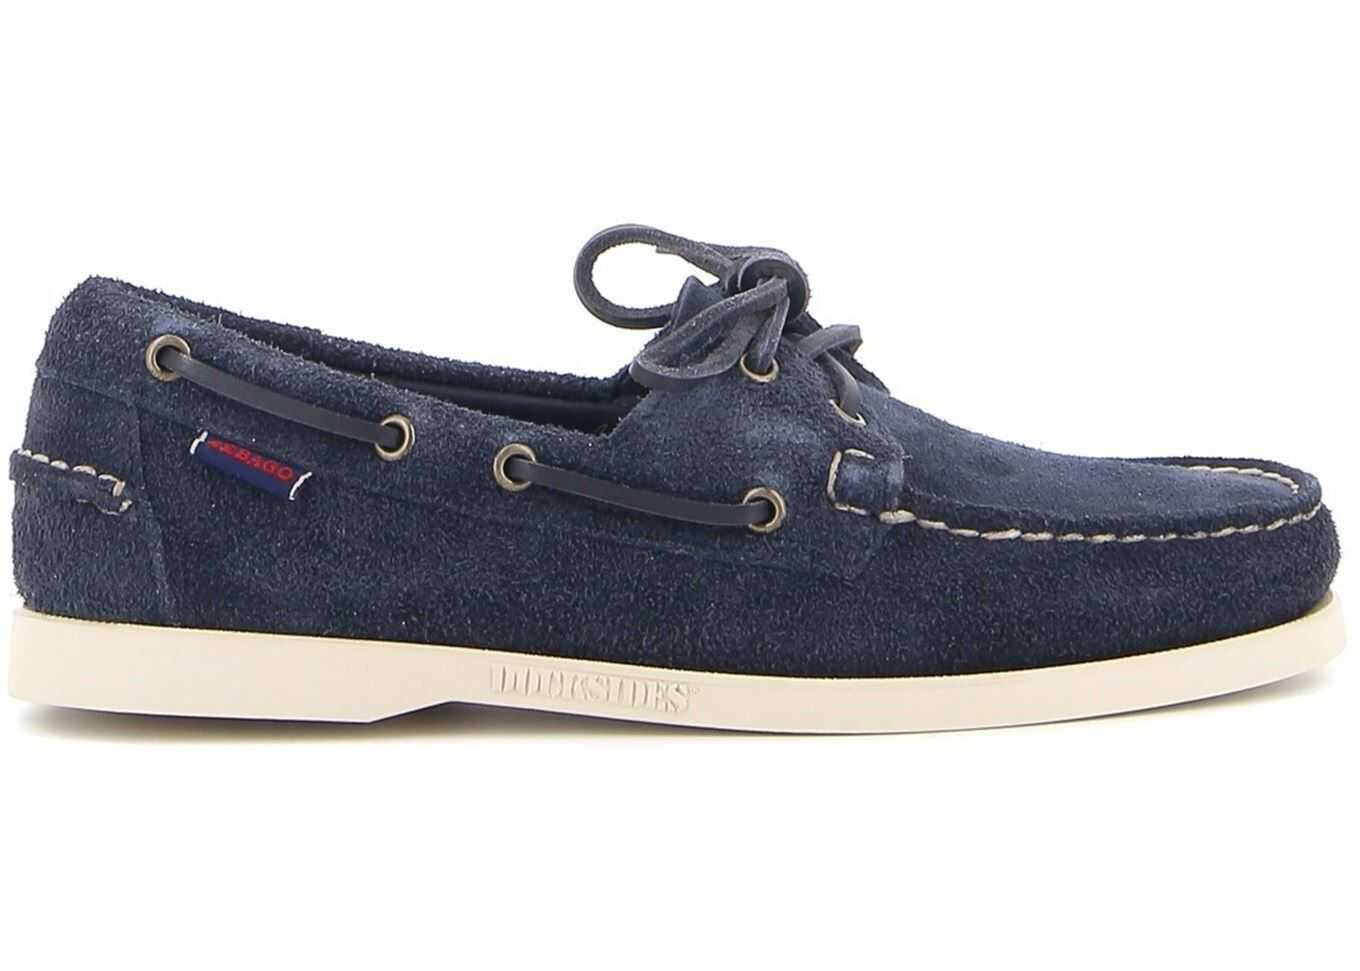 Sebago Portland Flesh Out Loafers In Blue 7111PTW908 Blue imagine b-mall.ro